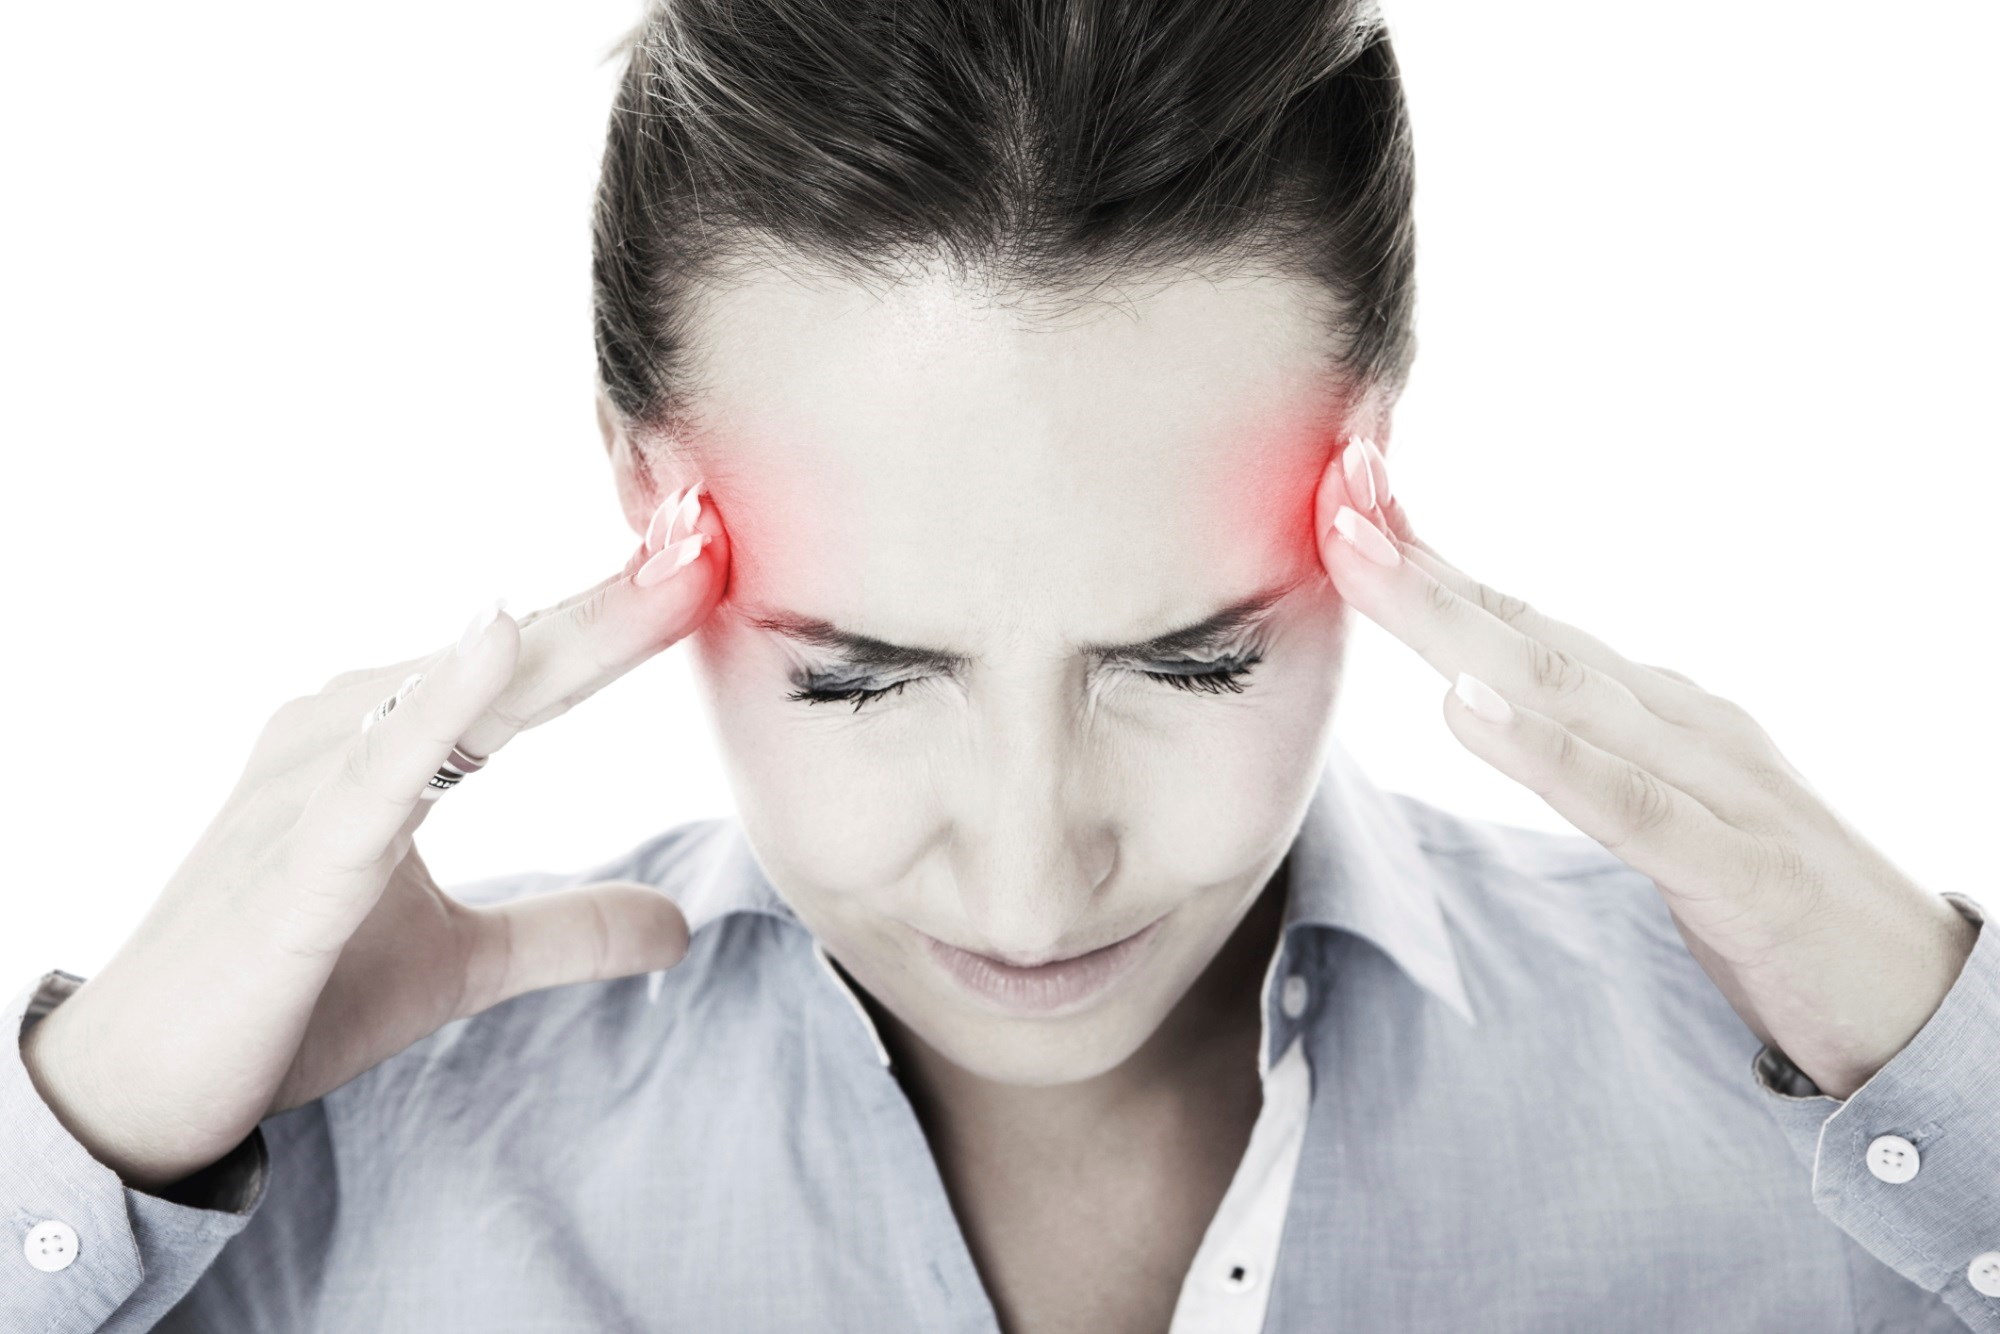 Monthly Migraine Days Reduced With CGRP Antagonist Erenumab